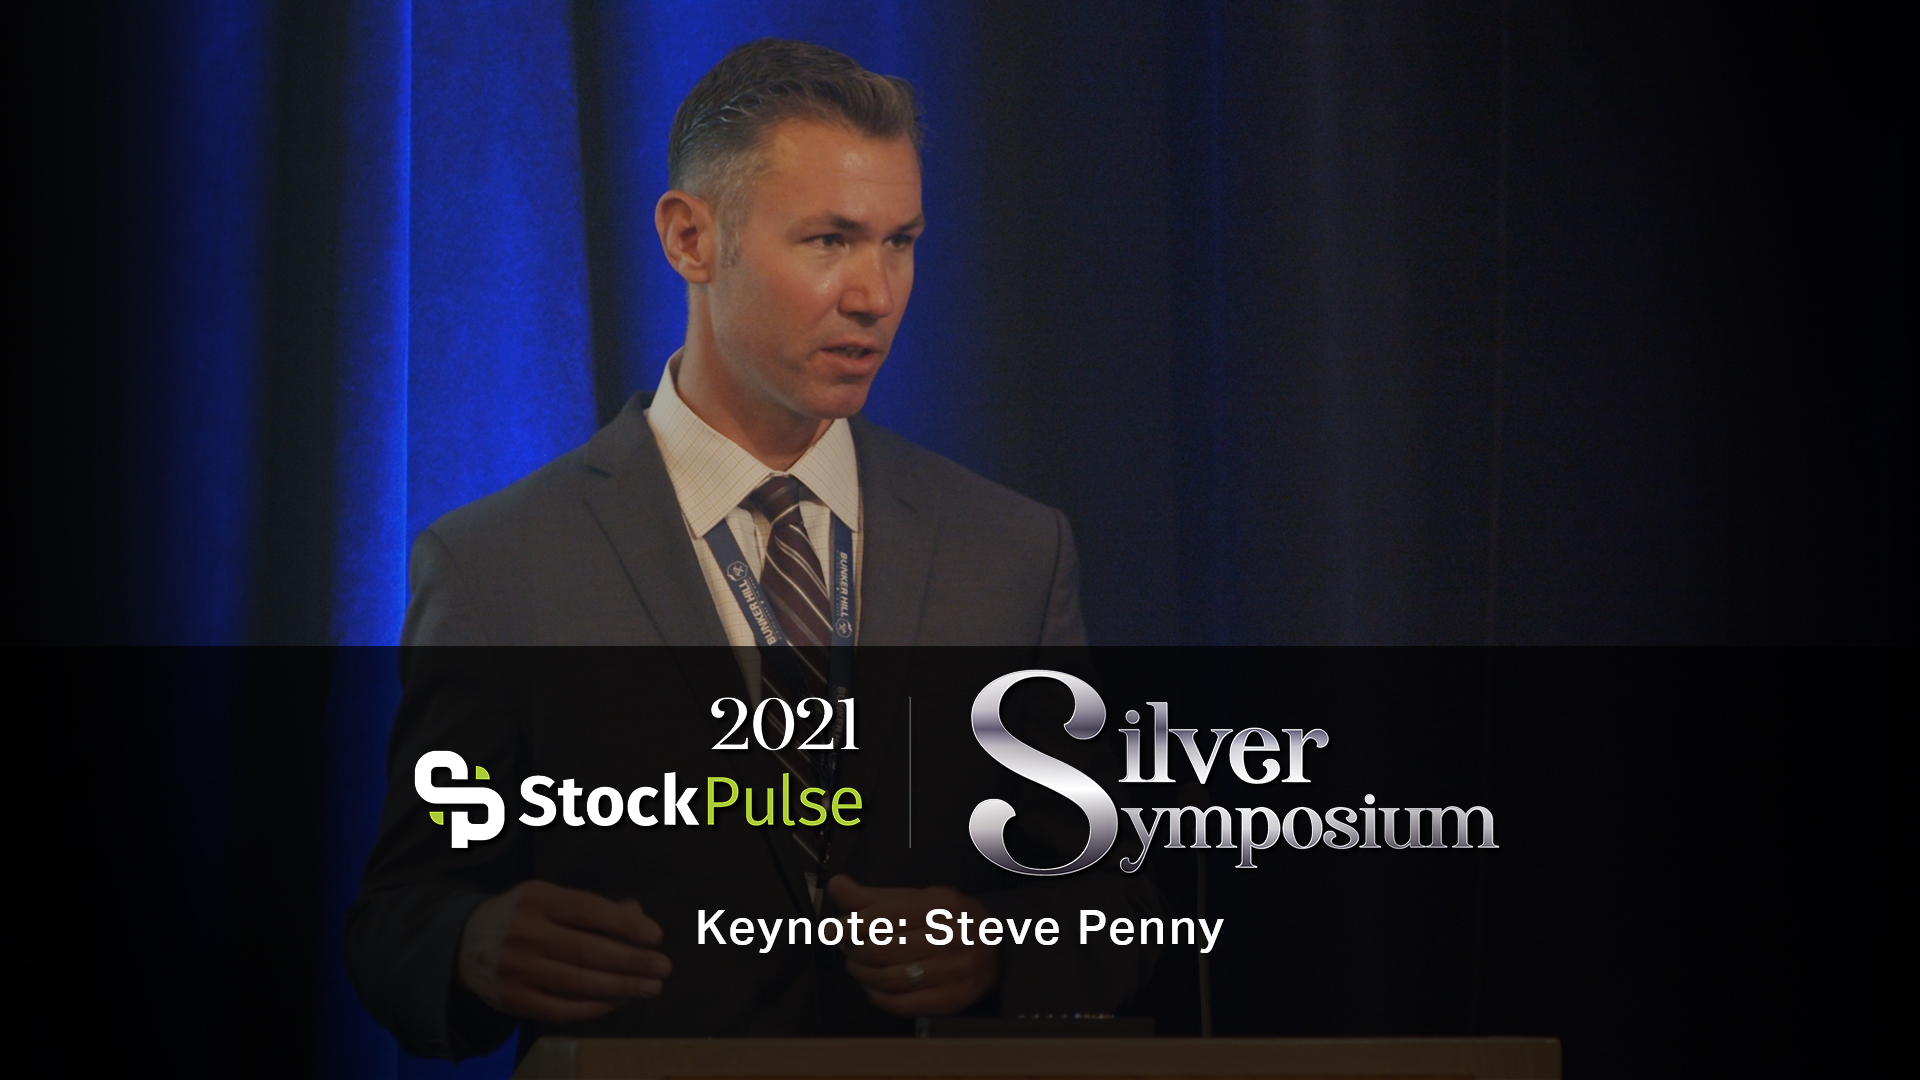 Keynote Steve Penny | How Silver Could Outperform Equities By a FACTOR OF 50